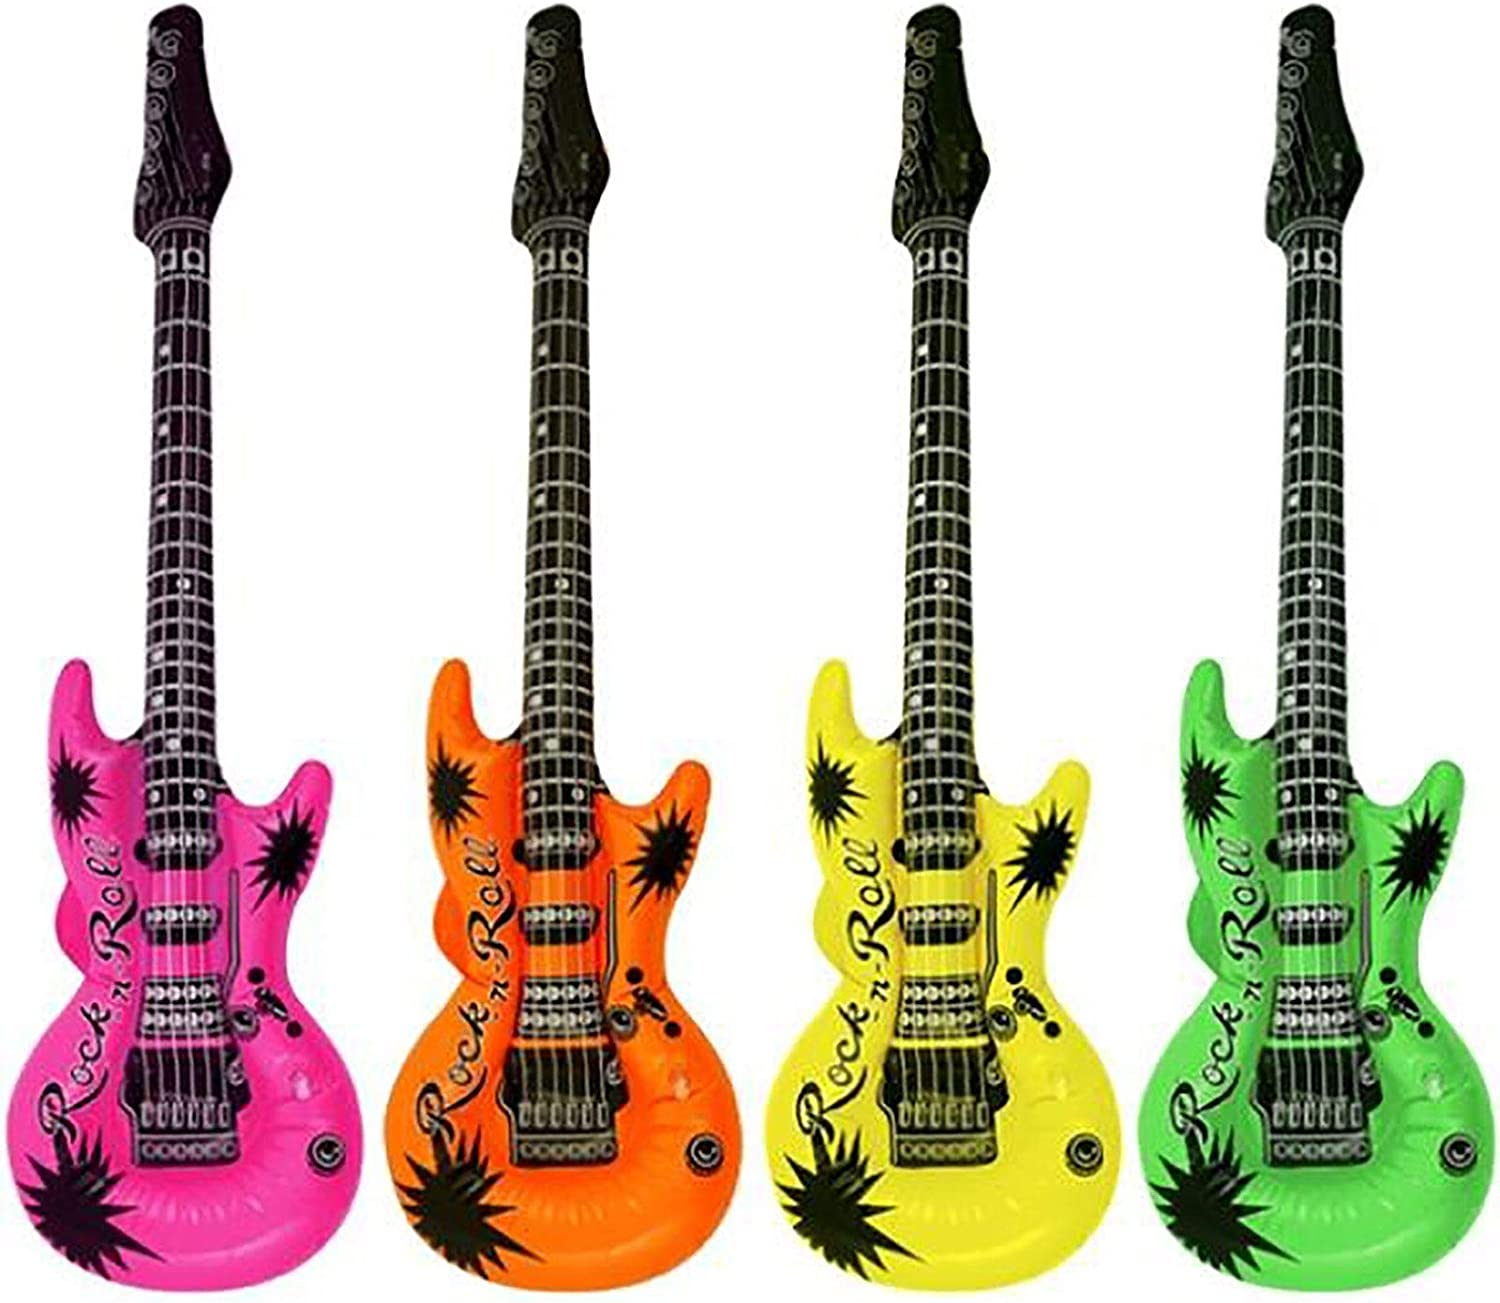 12 x 106cm Assorted Colour Inflatable Guitars for Birthday Parties, Barbecues, Gigs and Concerts. Green, orange, Yellow and Pink